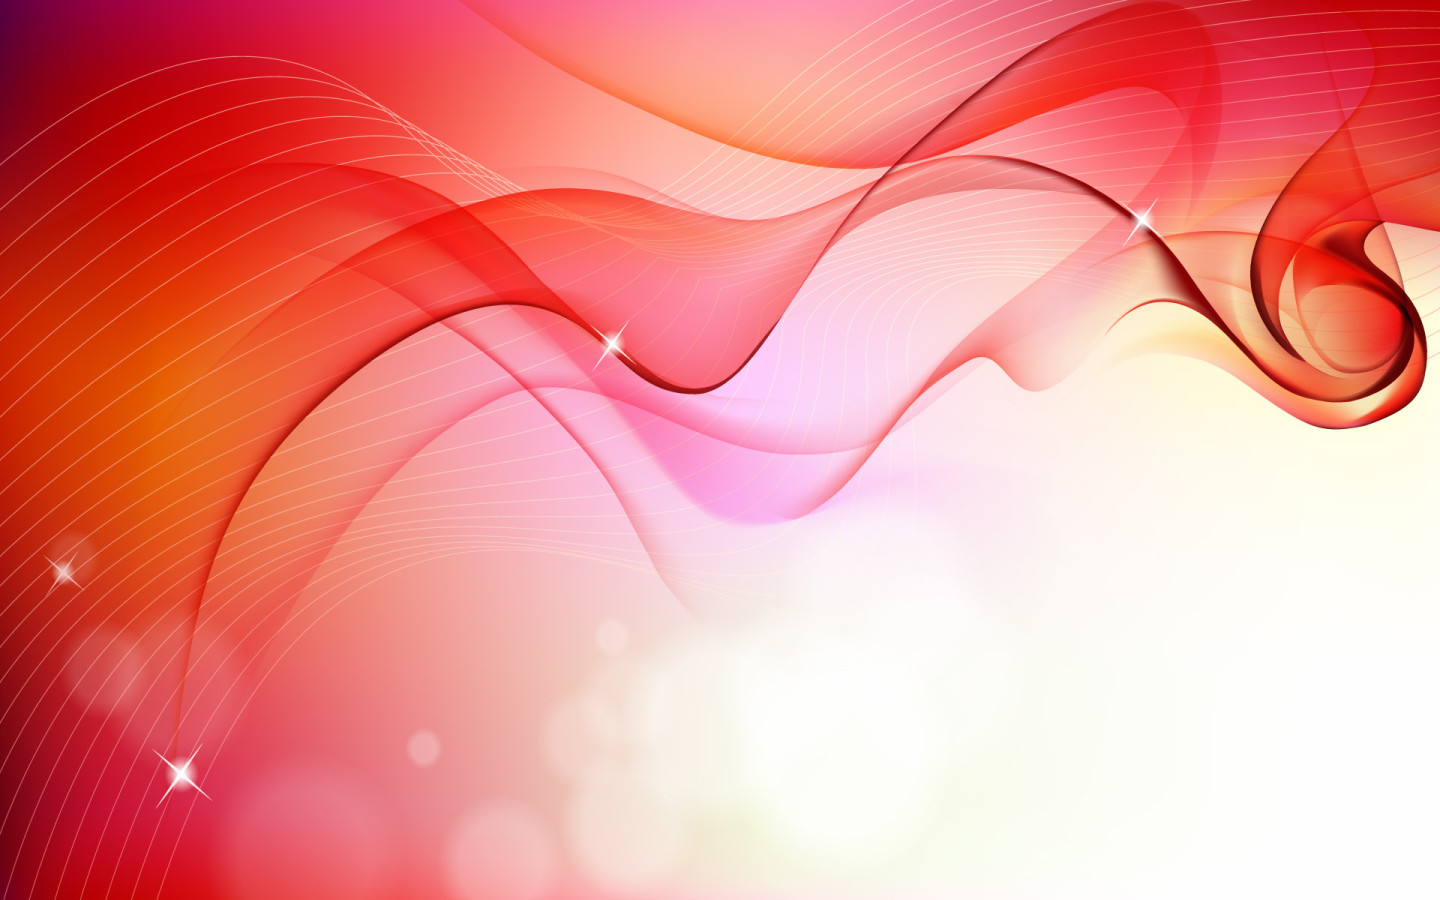 Red 3D wallpapers Red 3D background   Page 6 1440x900